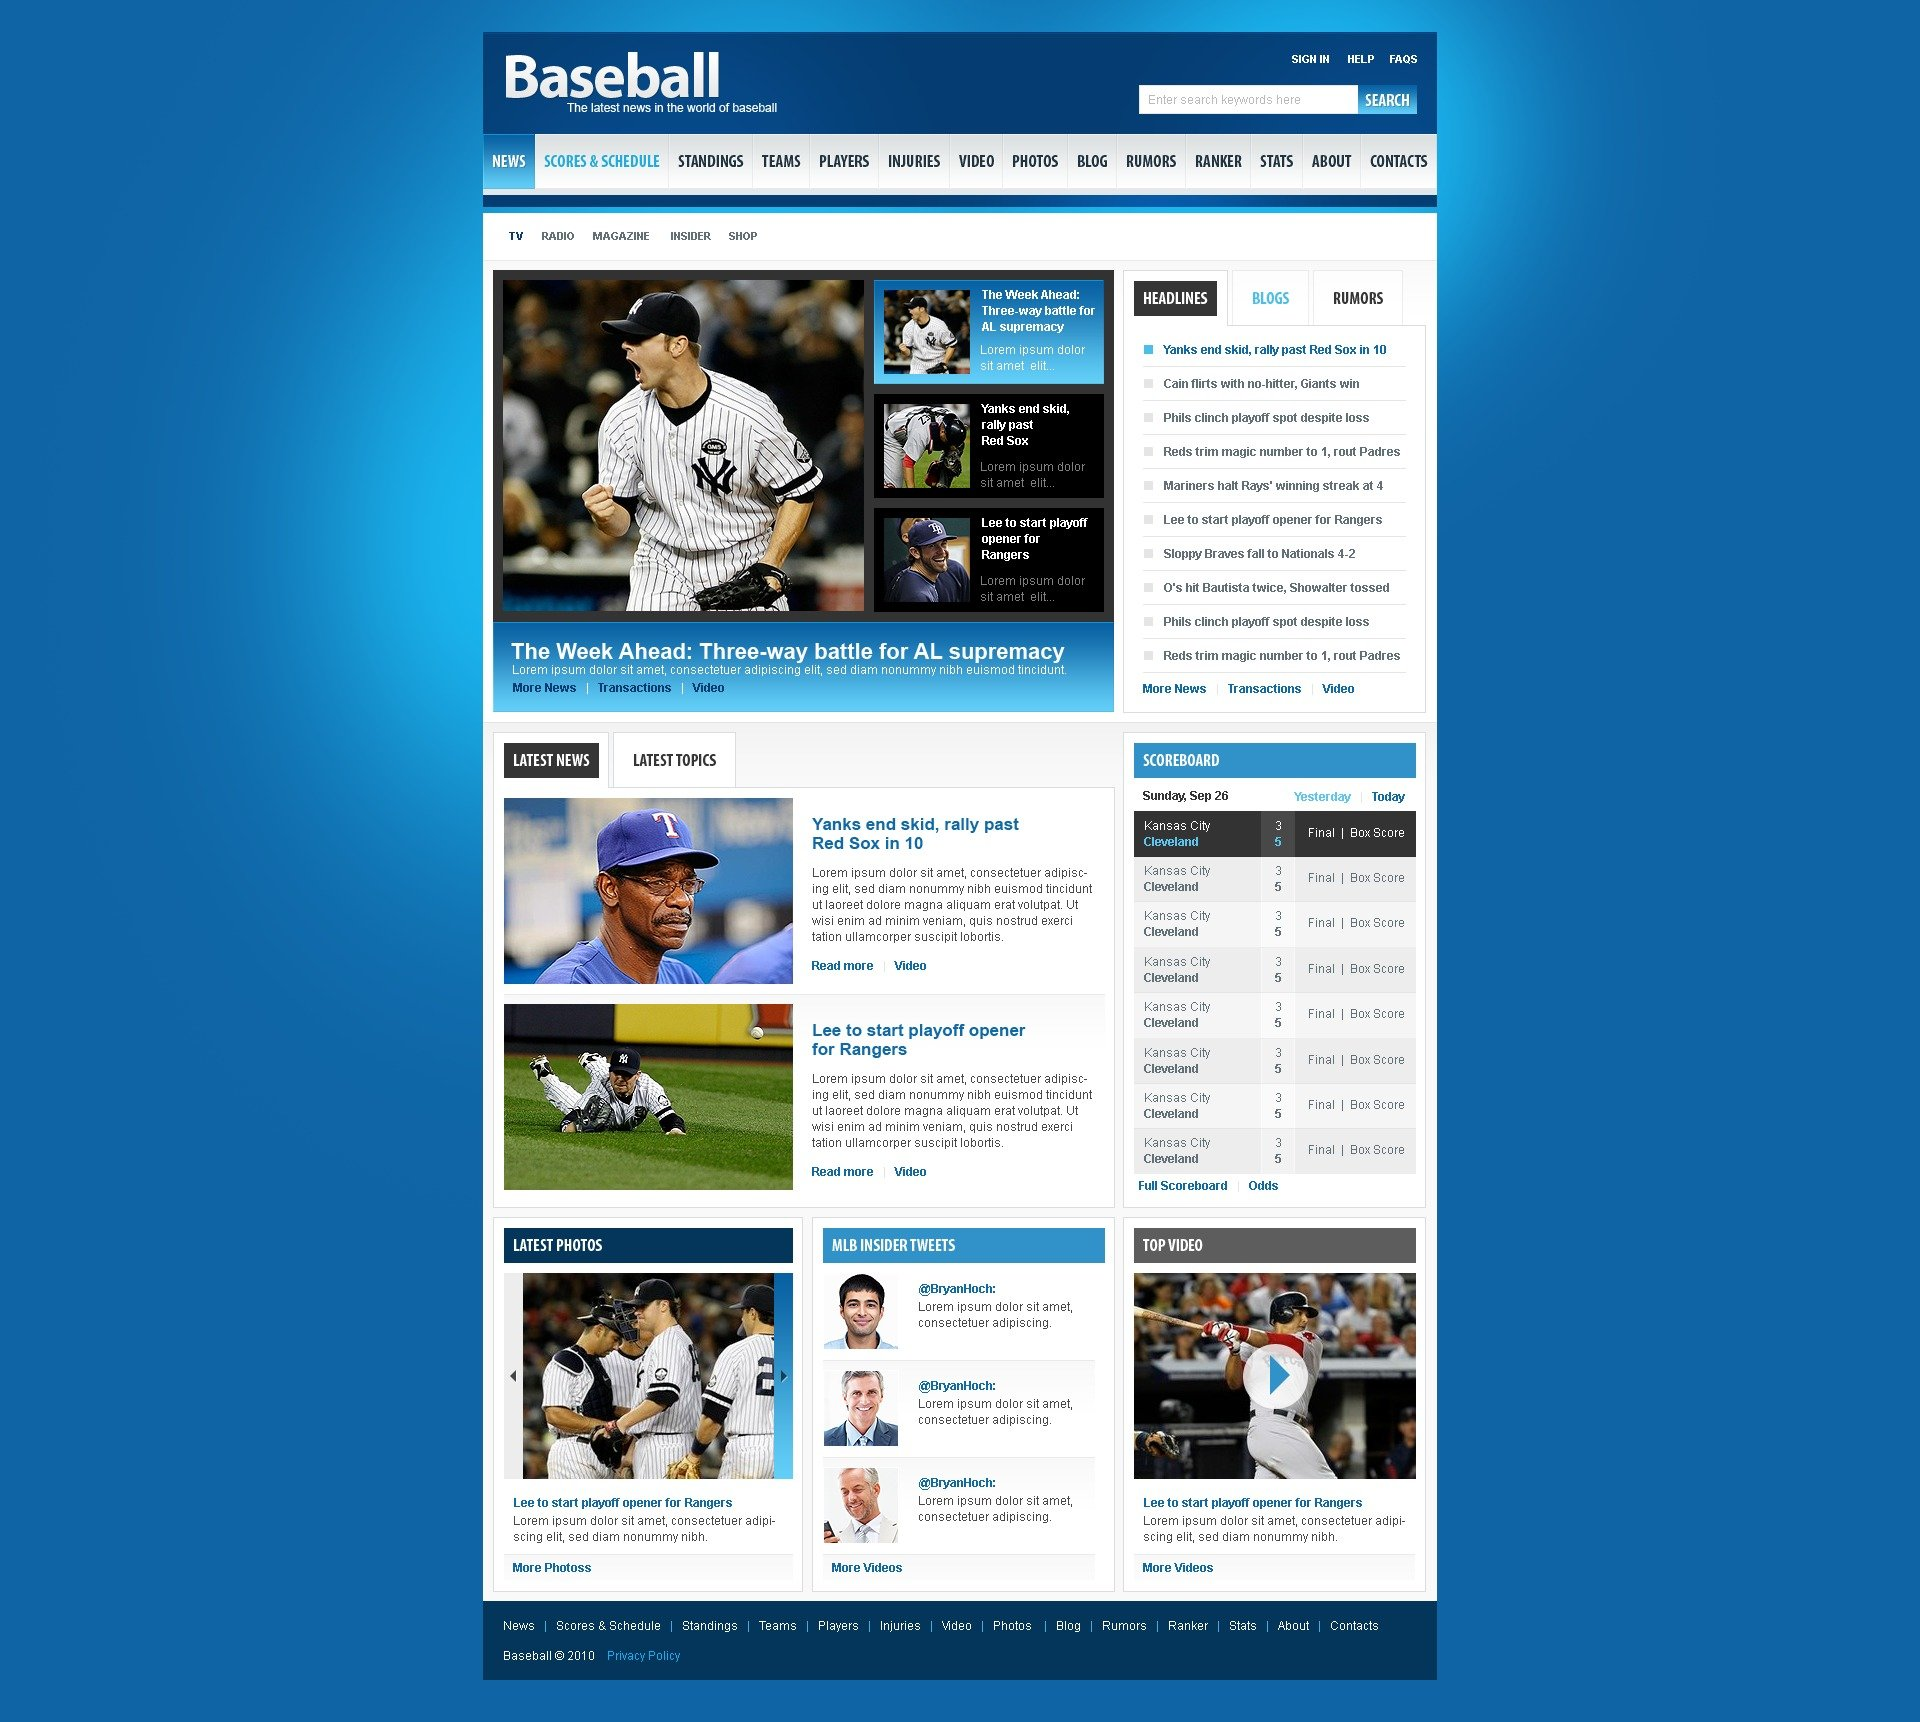 The Baseball Portal PSD Design 54513, one of the best PSD templates of its kind (sport, wide, jquery), also known as baseball portal PSD template, sport PSD template, score PSD template, championship PSD template, season PSD template, result PSD template, player PSD template, programs PSD template, photos PSD template, contacts PSD template, series PSD template, training PSD template, search PSD template, go PSD template, flash PSD template, tickets PSD template, info PSD template, video PSD template, latest news PSD template, official info PSD template, links PSD template, policy PSD template, contact PSD template, us PSD template, ball PSD template, kit PSD template, week PSD template, day PSD template, images PSD template, view PSD template, more PSD template, time and related with baseball portal, sport, score, championship, season, result, player, programs, photos, contacts, series, training, search, go, flash, tickets, info, video, latest news, official info, links, policy, contact, us, ball, kit, week, day, images, view, more, time, etc.